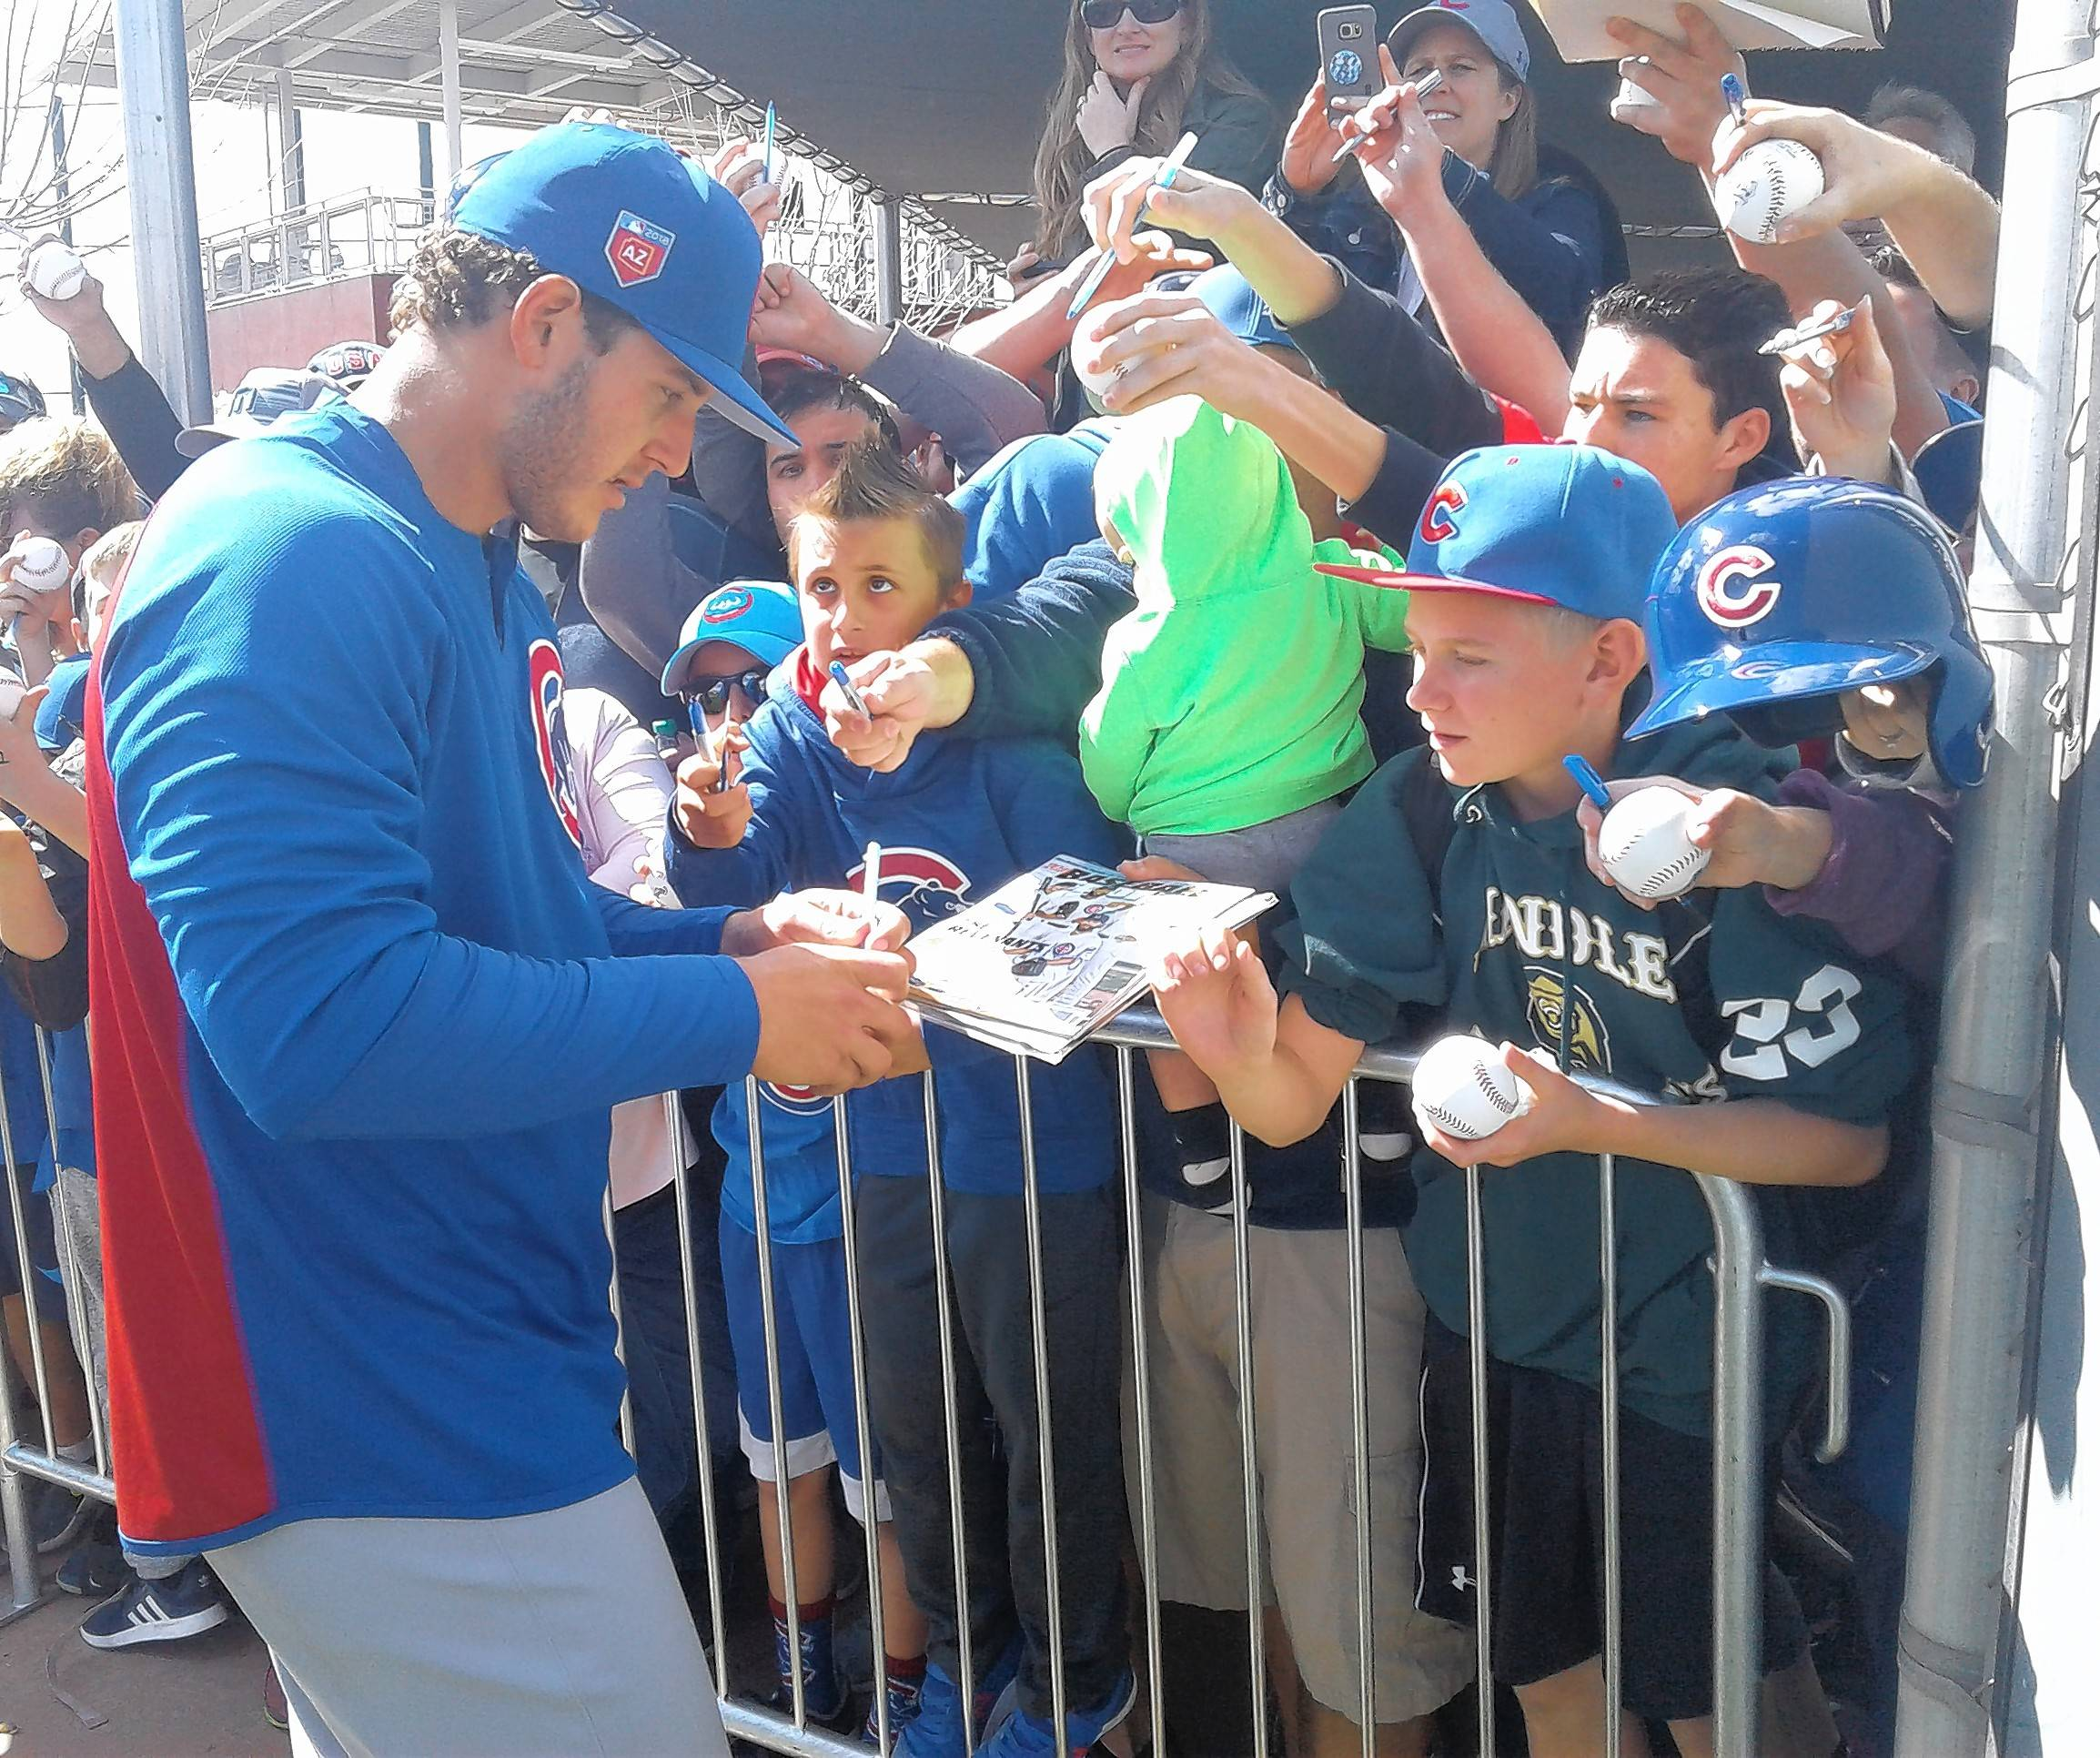 Chicago Cubs first baseman Anthony Rizzo interacts with fans Monday as the Cubs held their first full spring training workout in Mesa, Arizona.